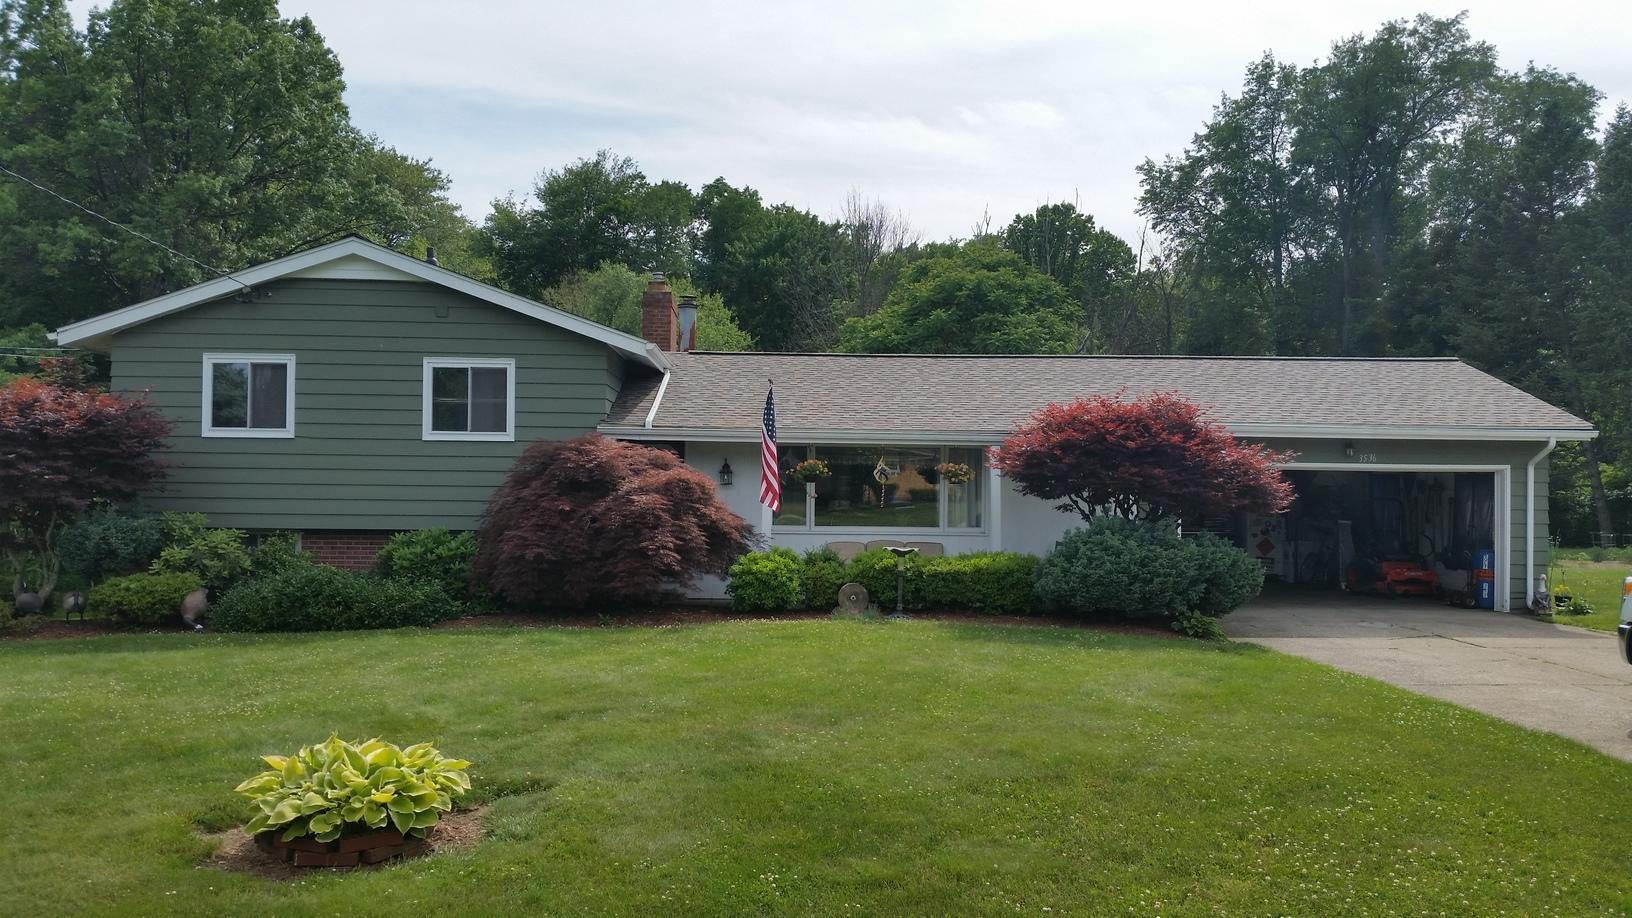 Roof Replacement In Perry Ohio - After Photo